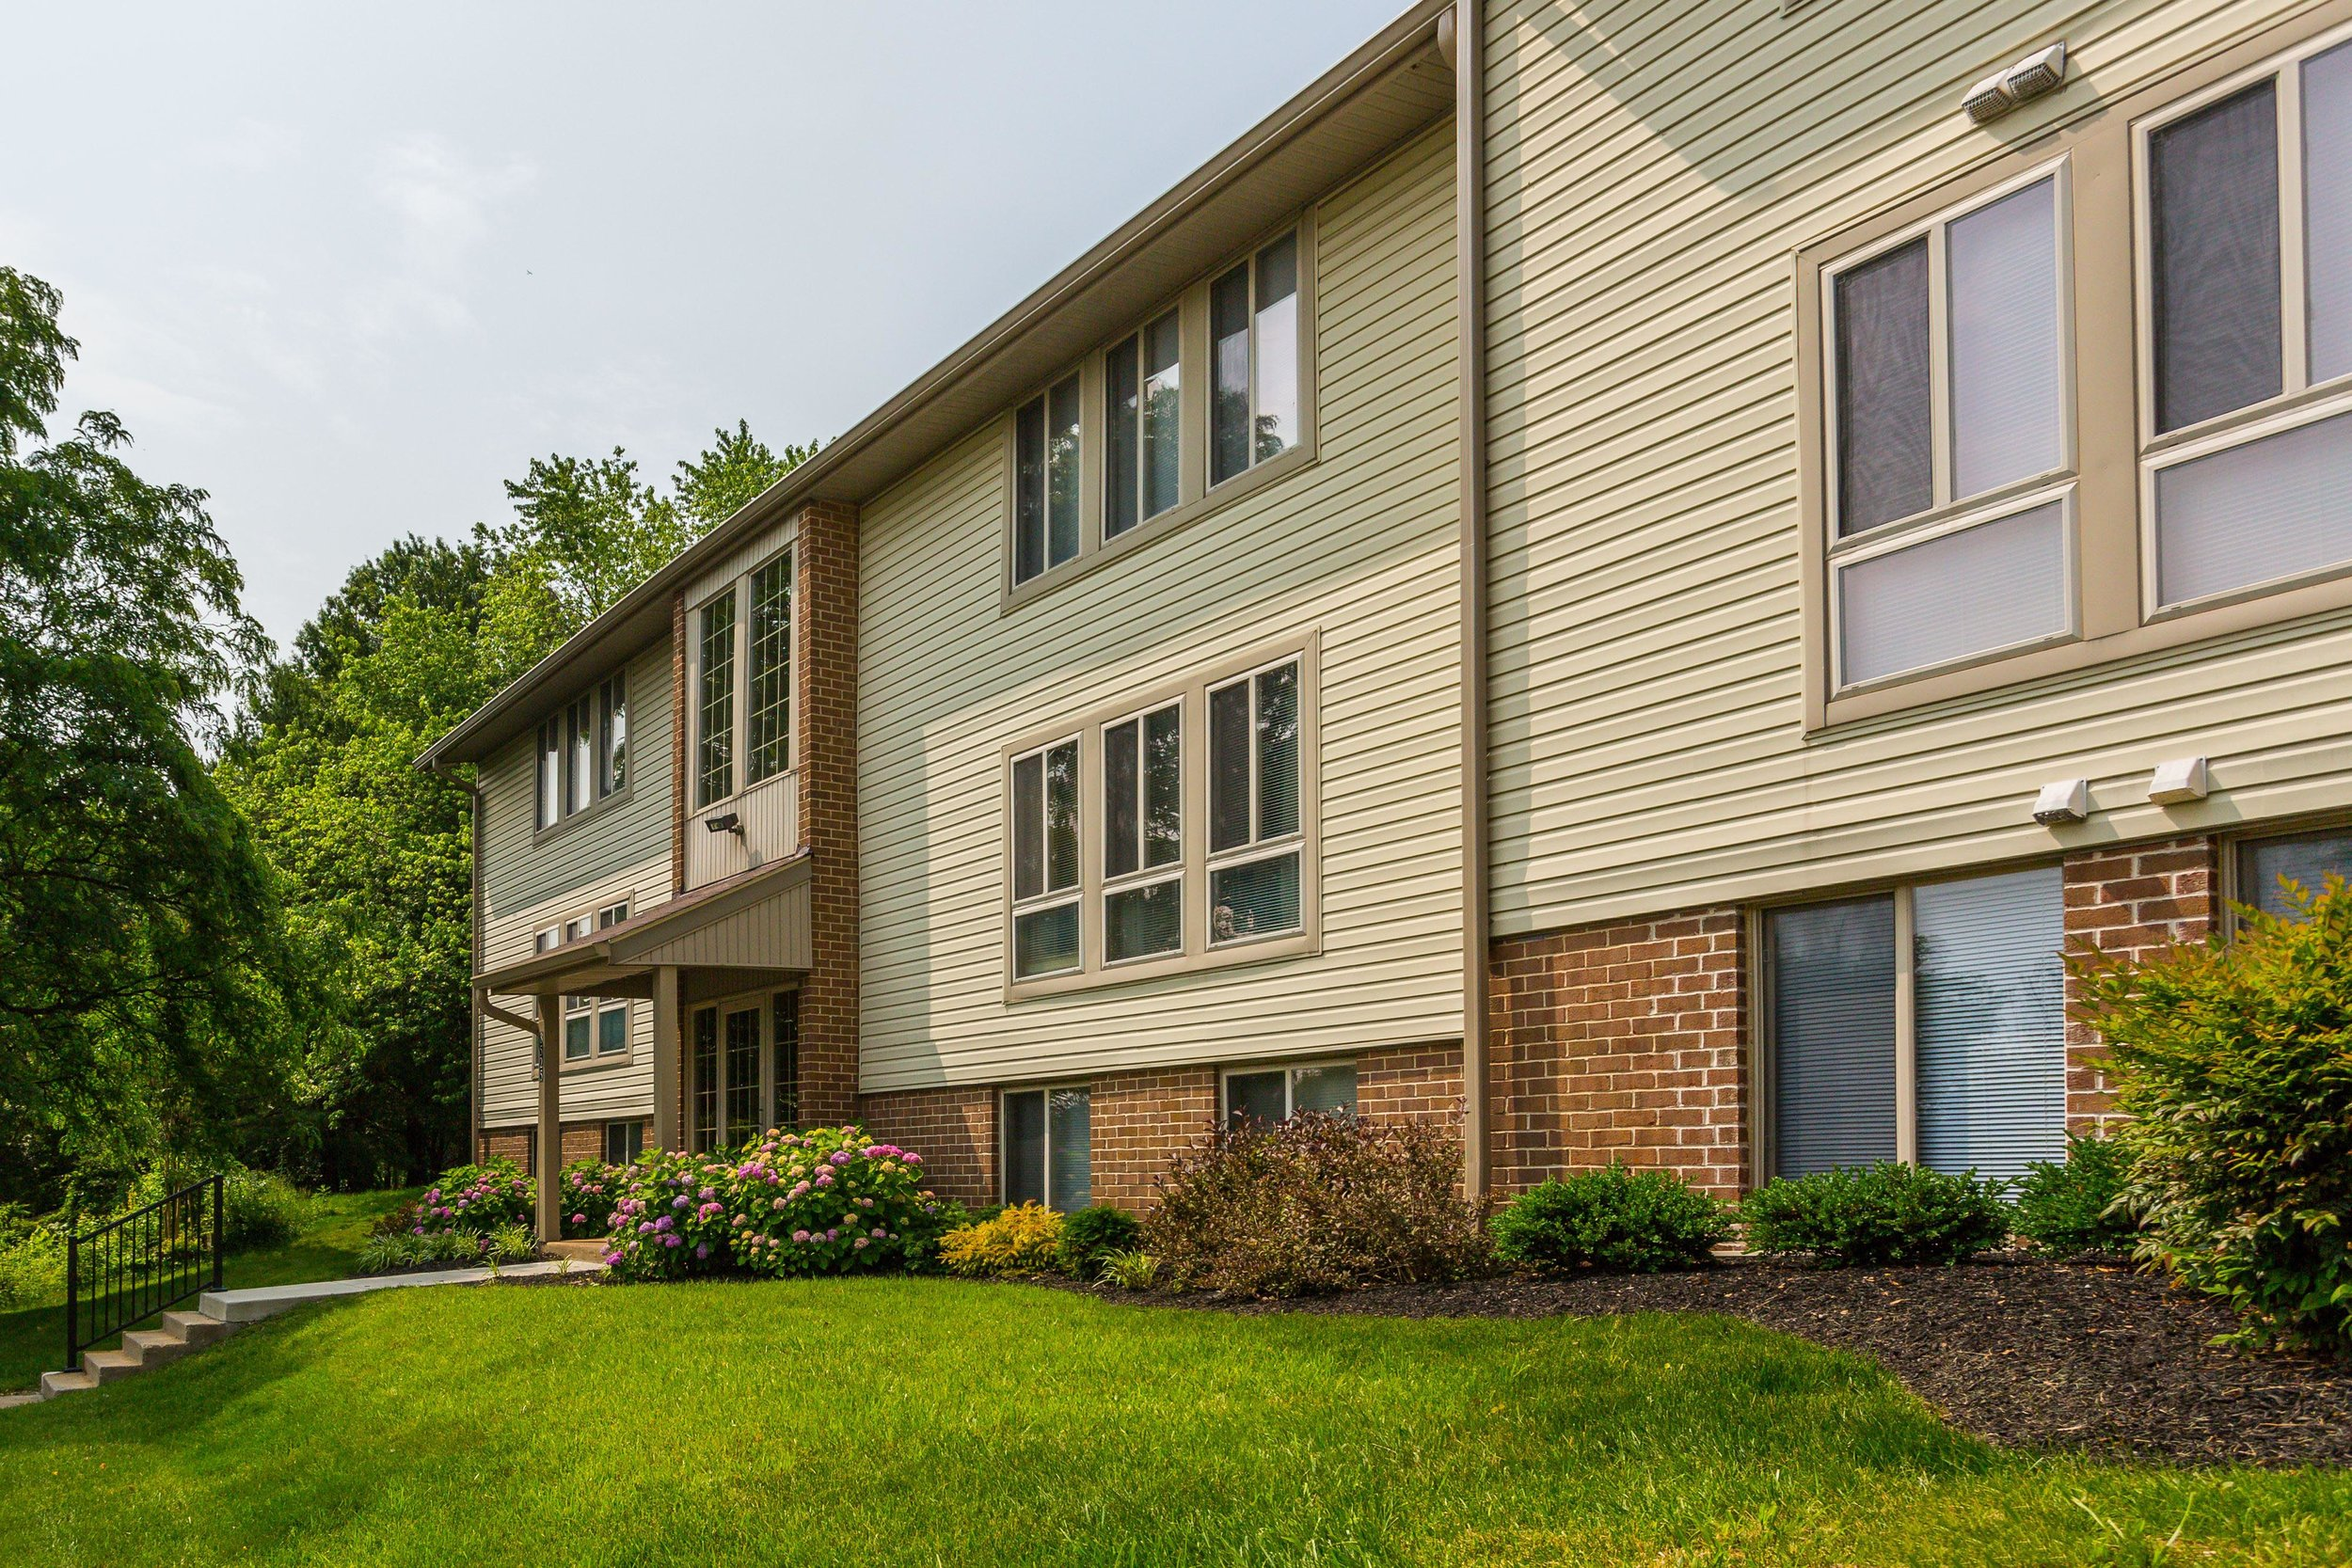 Beautiful Hallfield Apartment Community in Perry Hall, MD